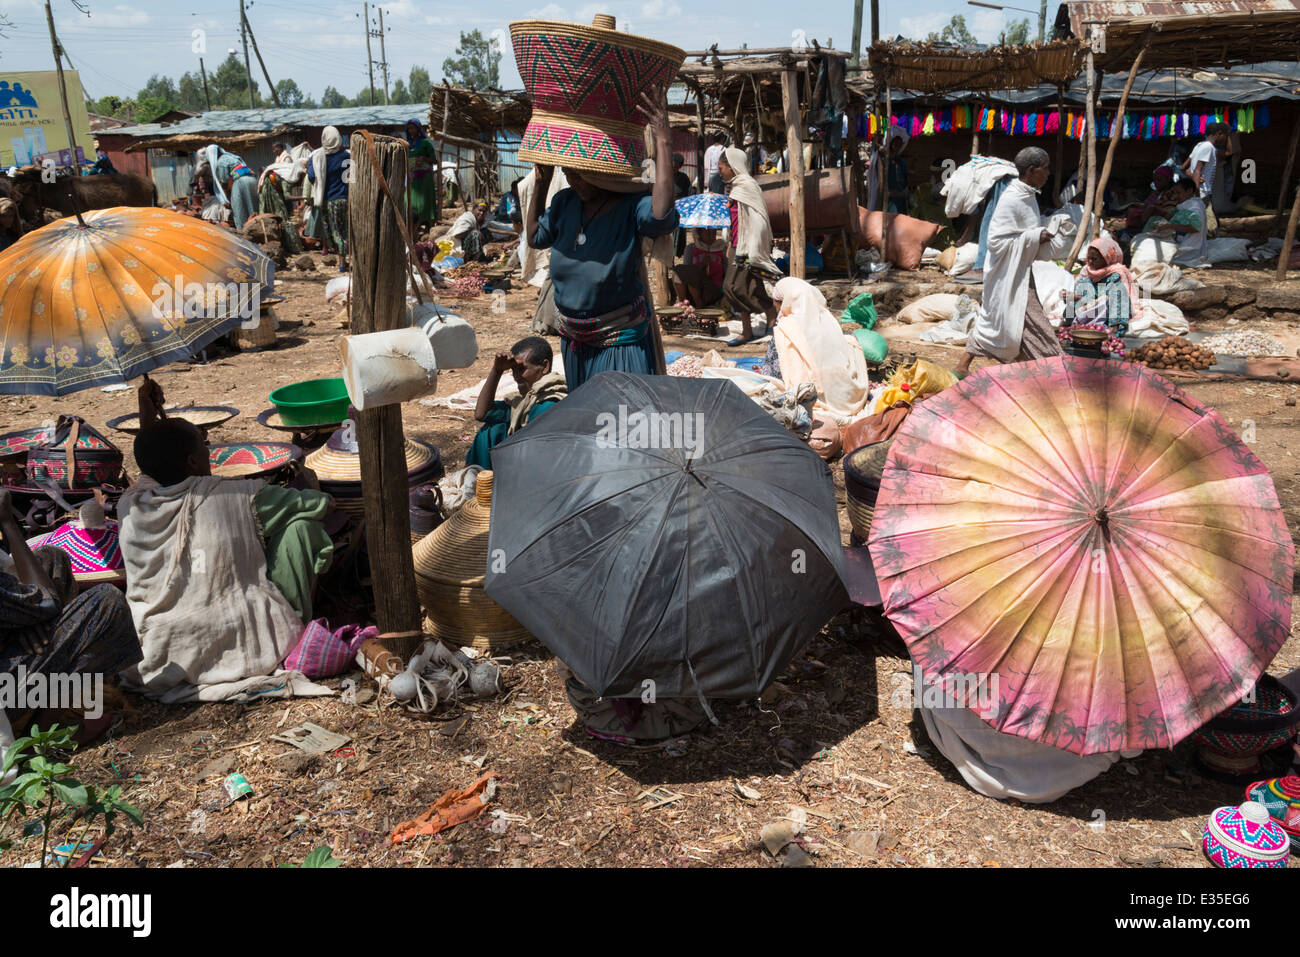 Weekly market at Afaf. Zege peninsula. Lake Tana. Northern Ethiopia. - Stock Image